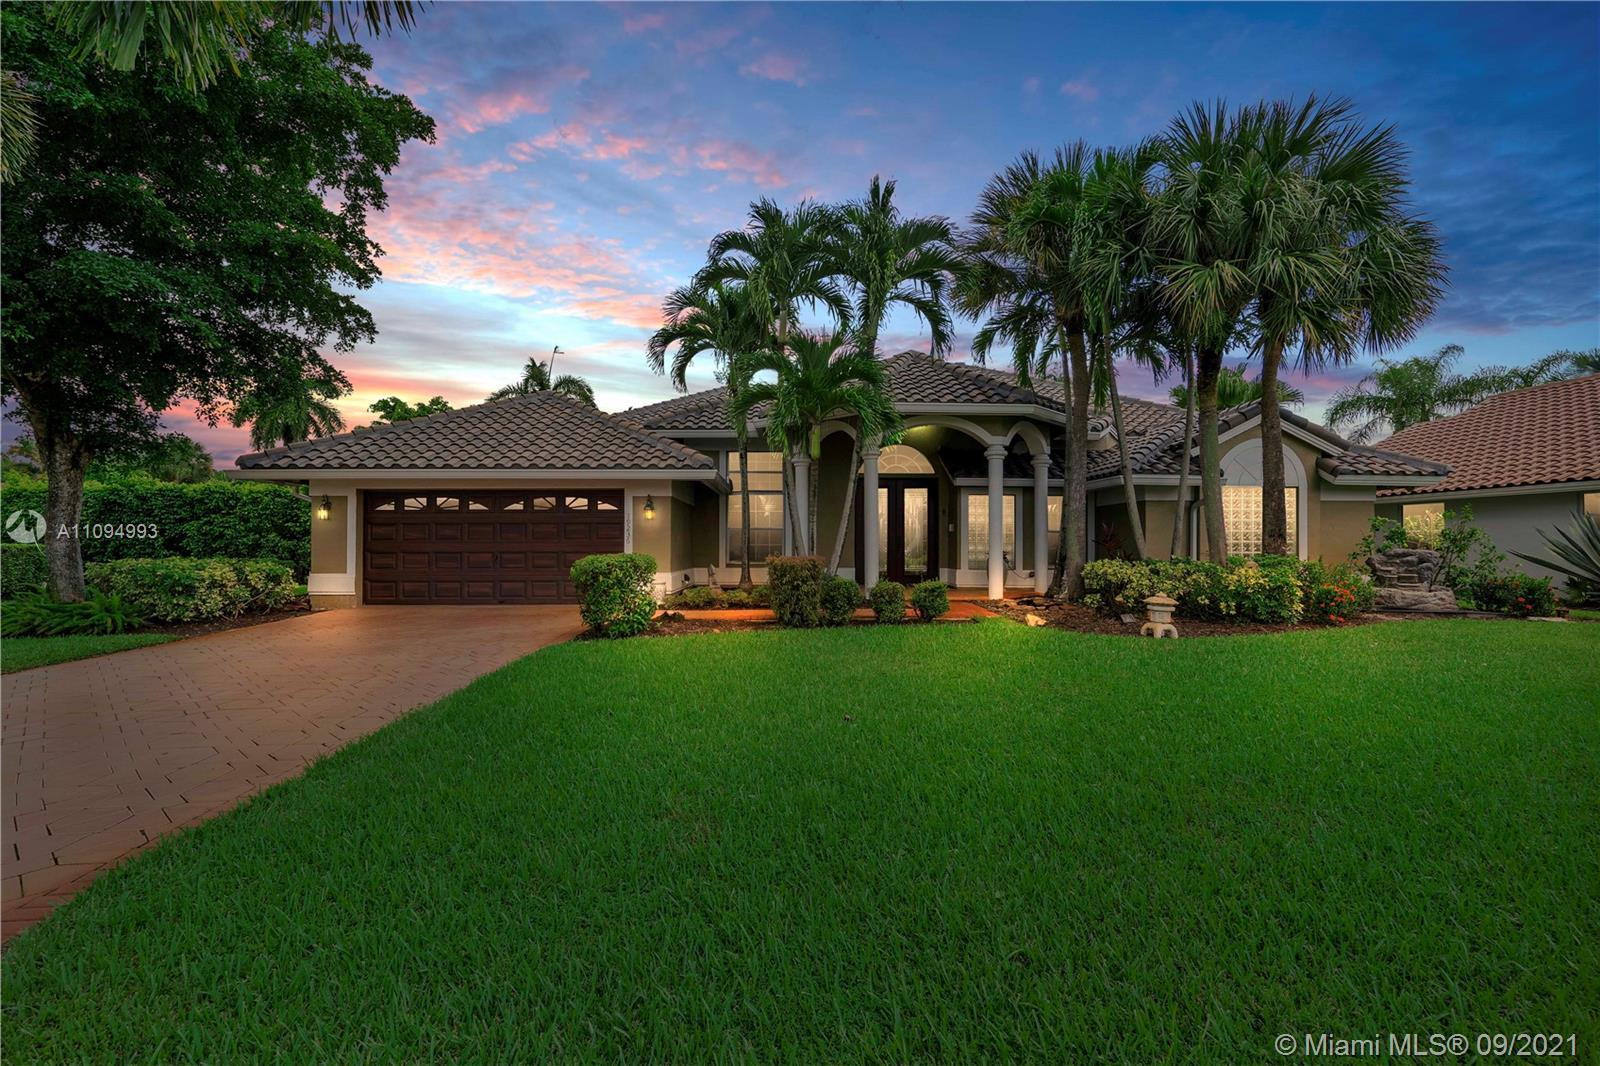 Wow! 5-Bed, 3-Bath Waterfront Pool Home With Over $140K In Upgrades In Prestigious Gated Community O